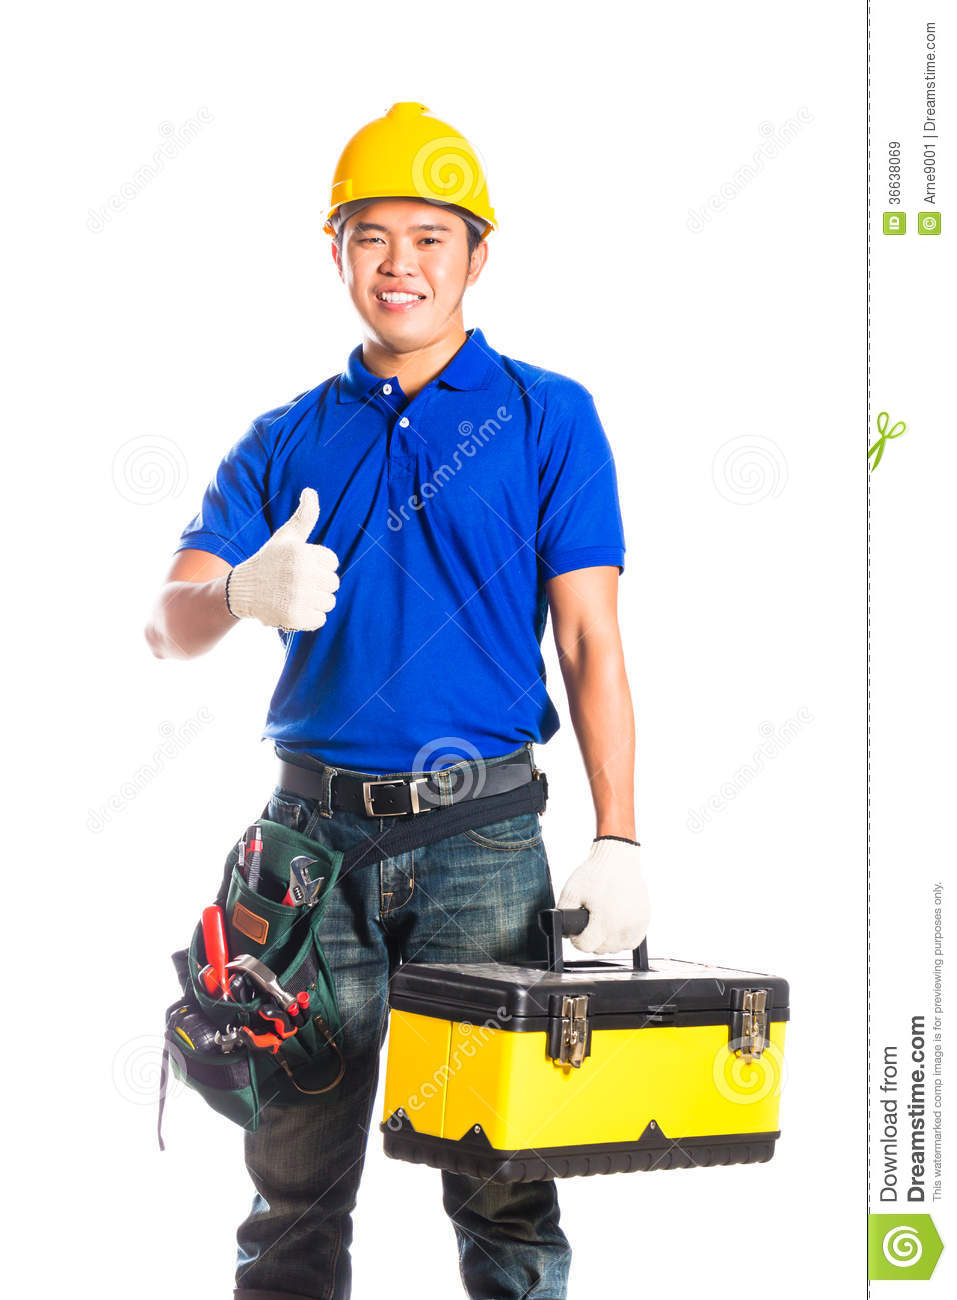 ... or construction worker with helmet and tool belt sitting on tool box